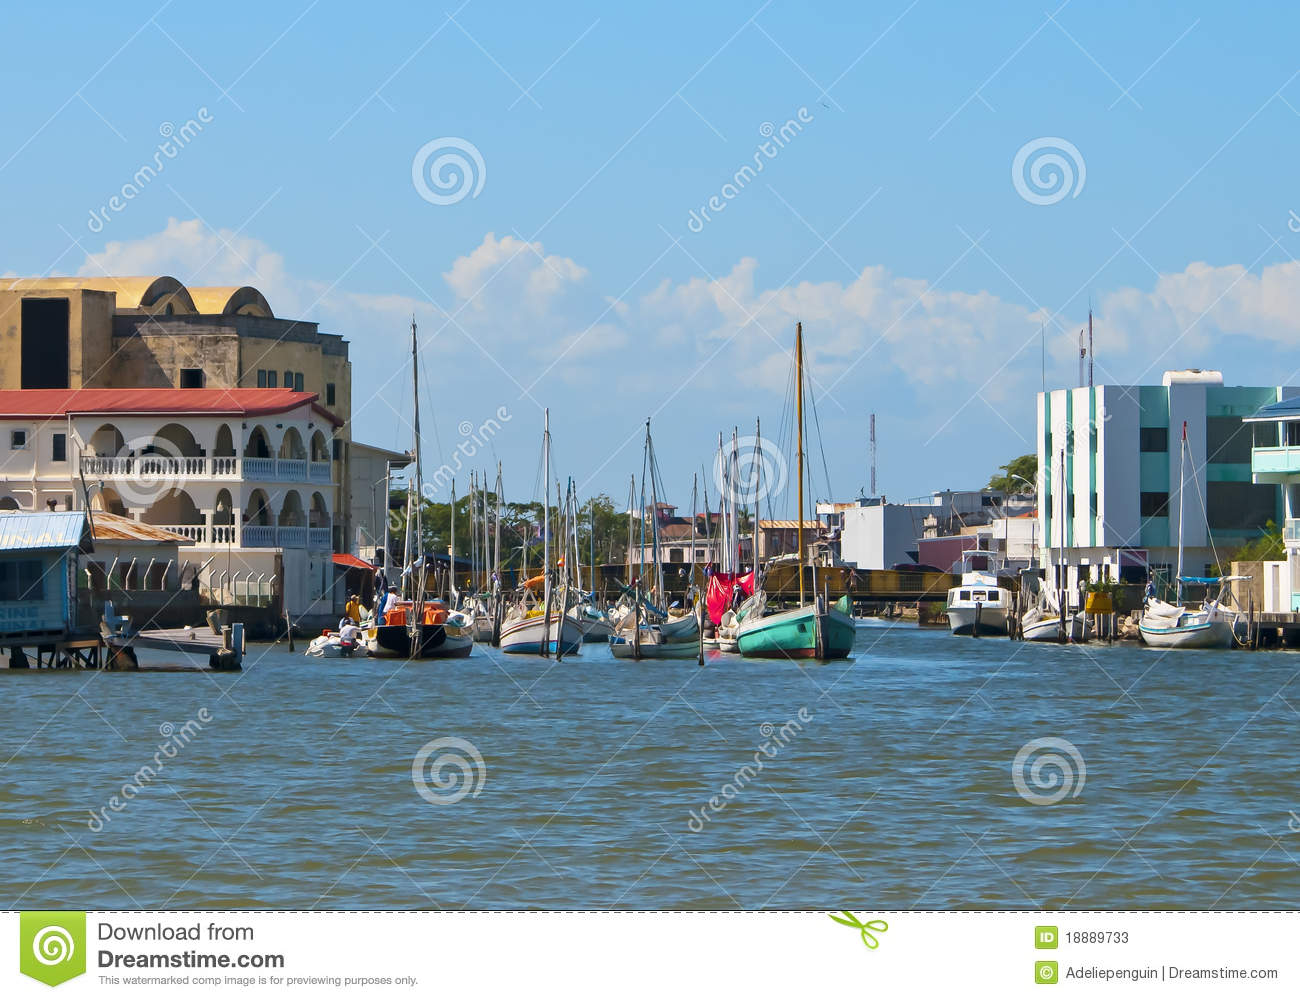 Waterway of Belize City, Belize